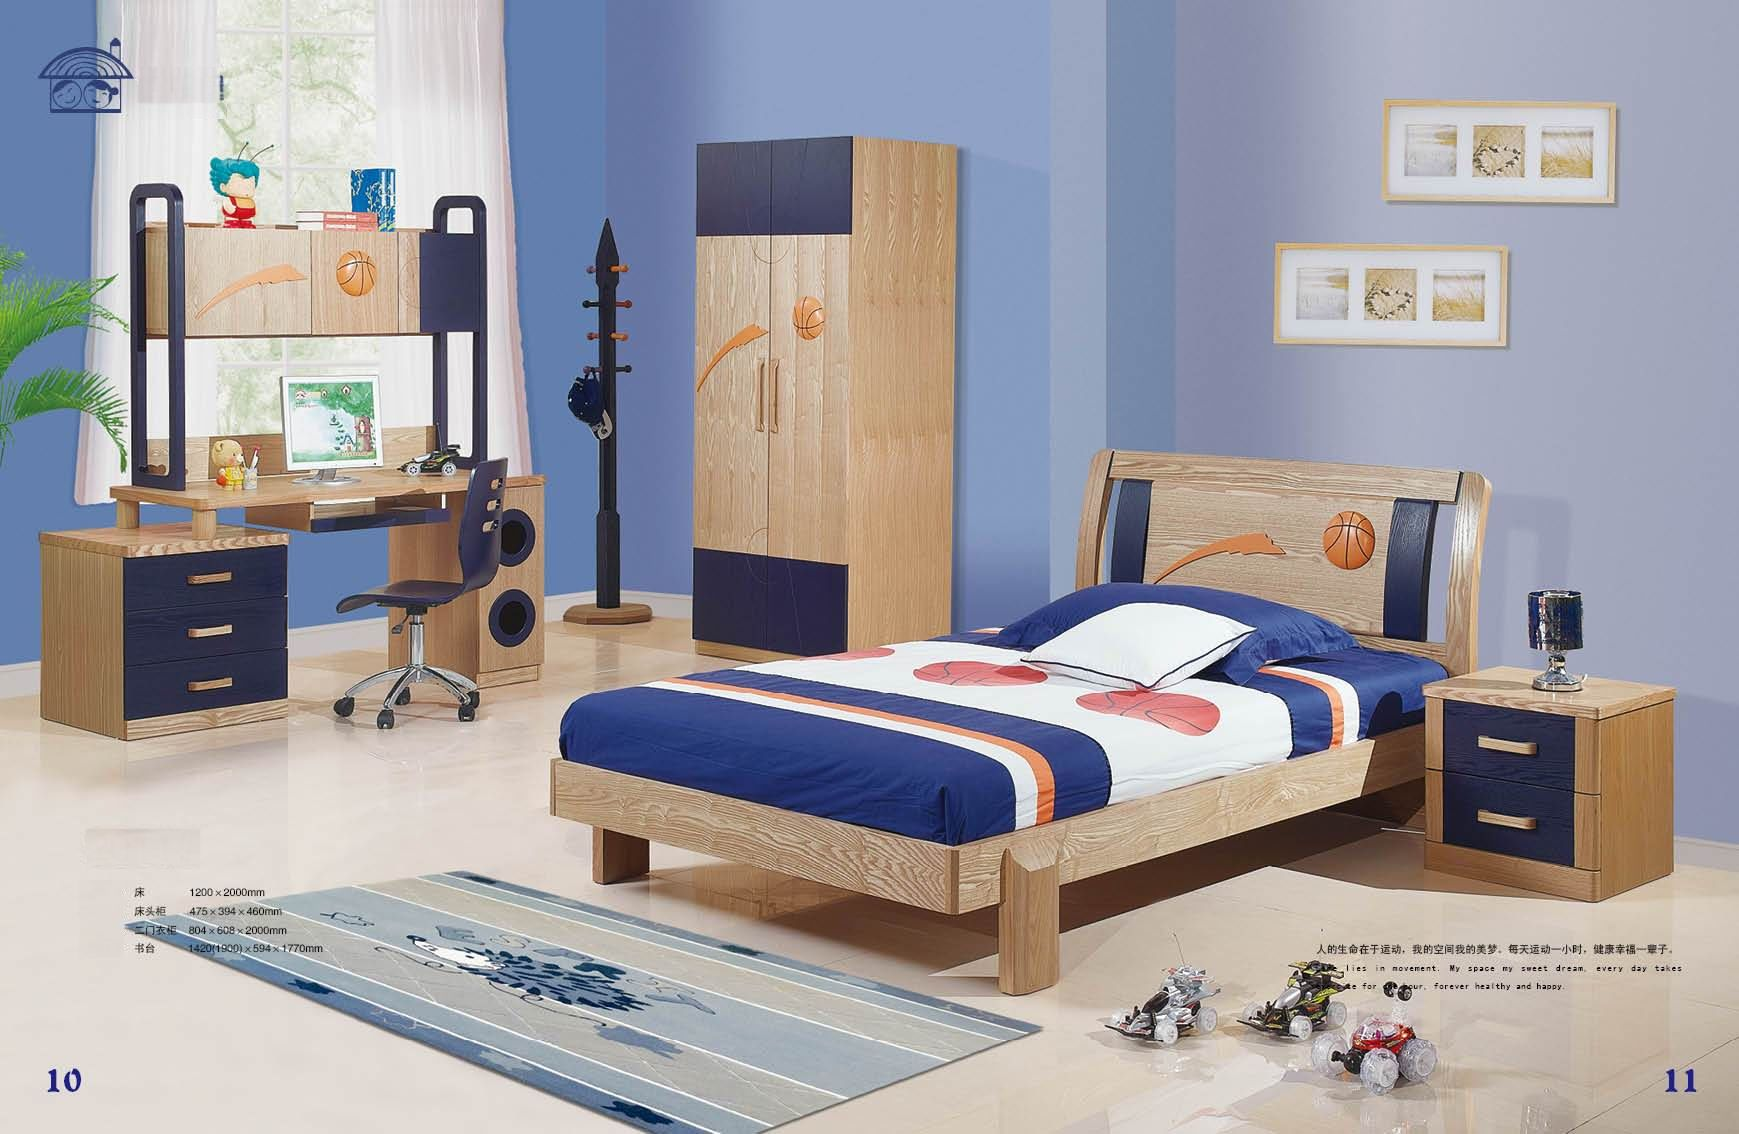 Youth bedroom furniture kids bedroom set jkd 20120 for Kid sized furniture